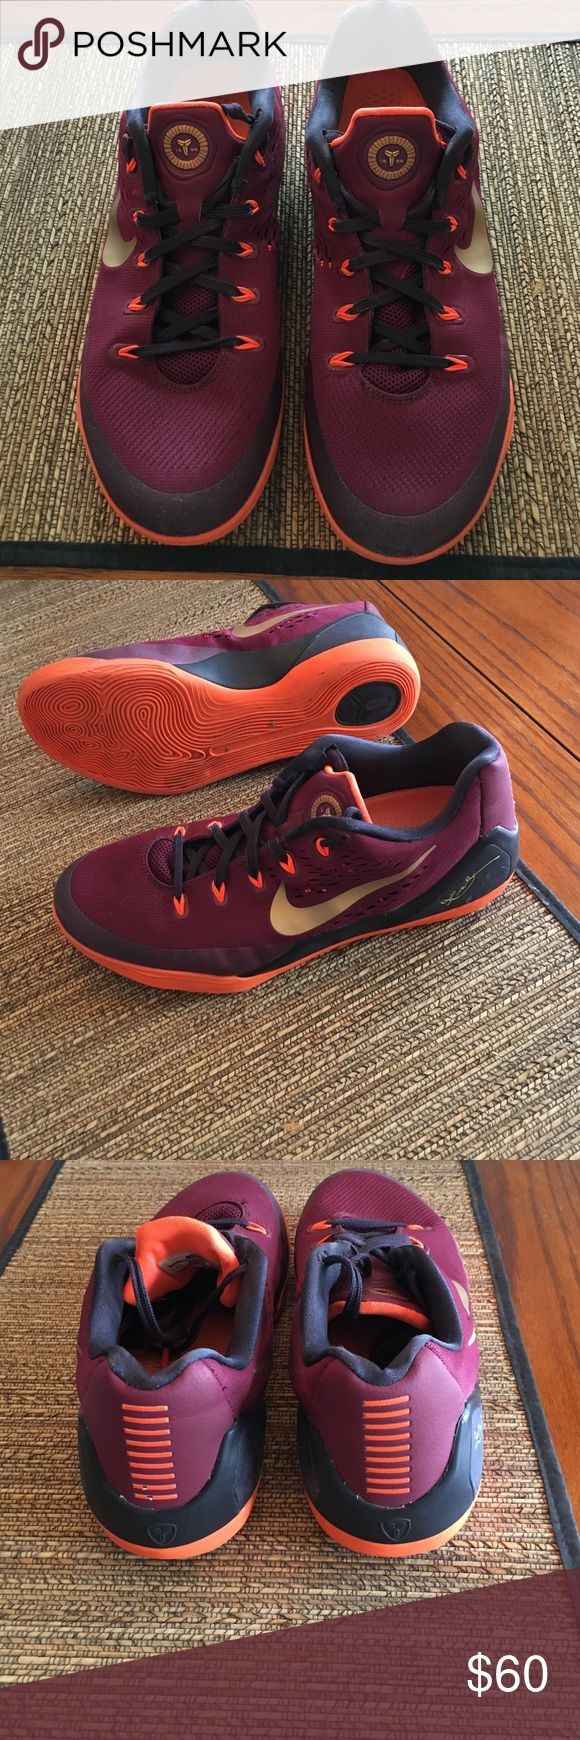 Kobe Nike Basketball Shoes men's size 9.5 Kobe Nike basketball shoes men's size 9.5.  Deep garnet (maroon), orange, and gold colors.  Lightly used.  Some small scuff marks on left toe.  Not super noticeable.  Overall in good condition! Nike Shoes Sneakers